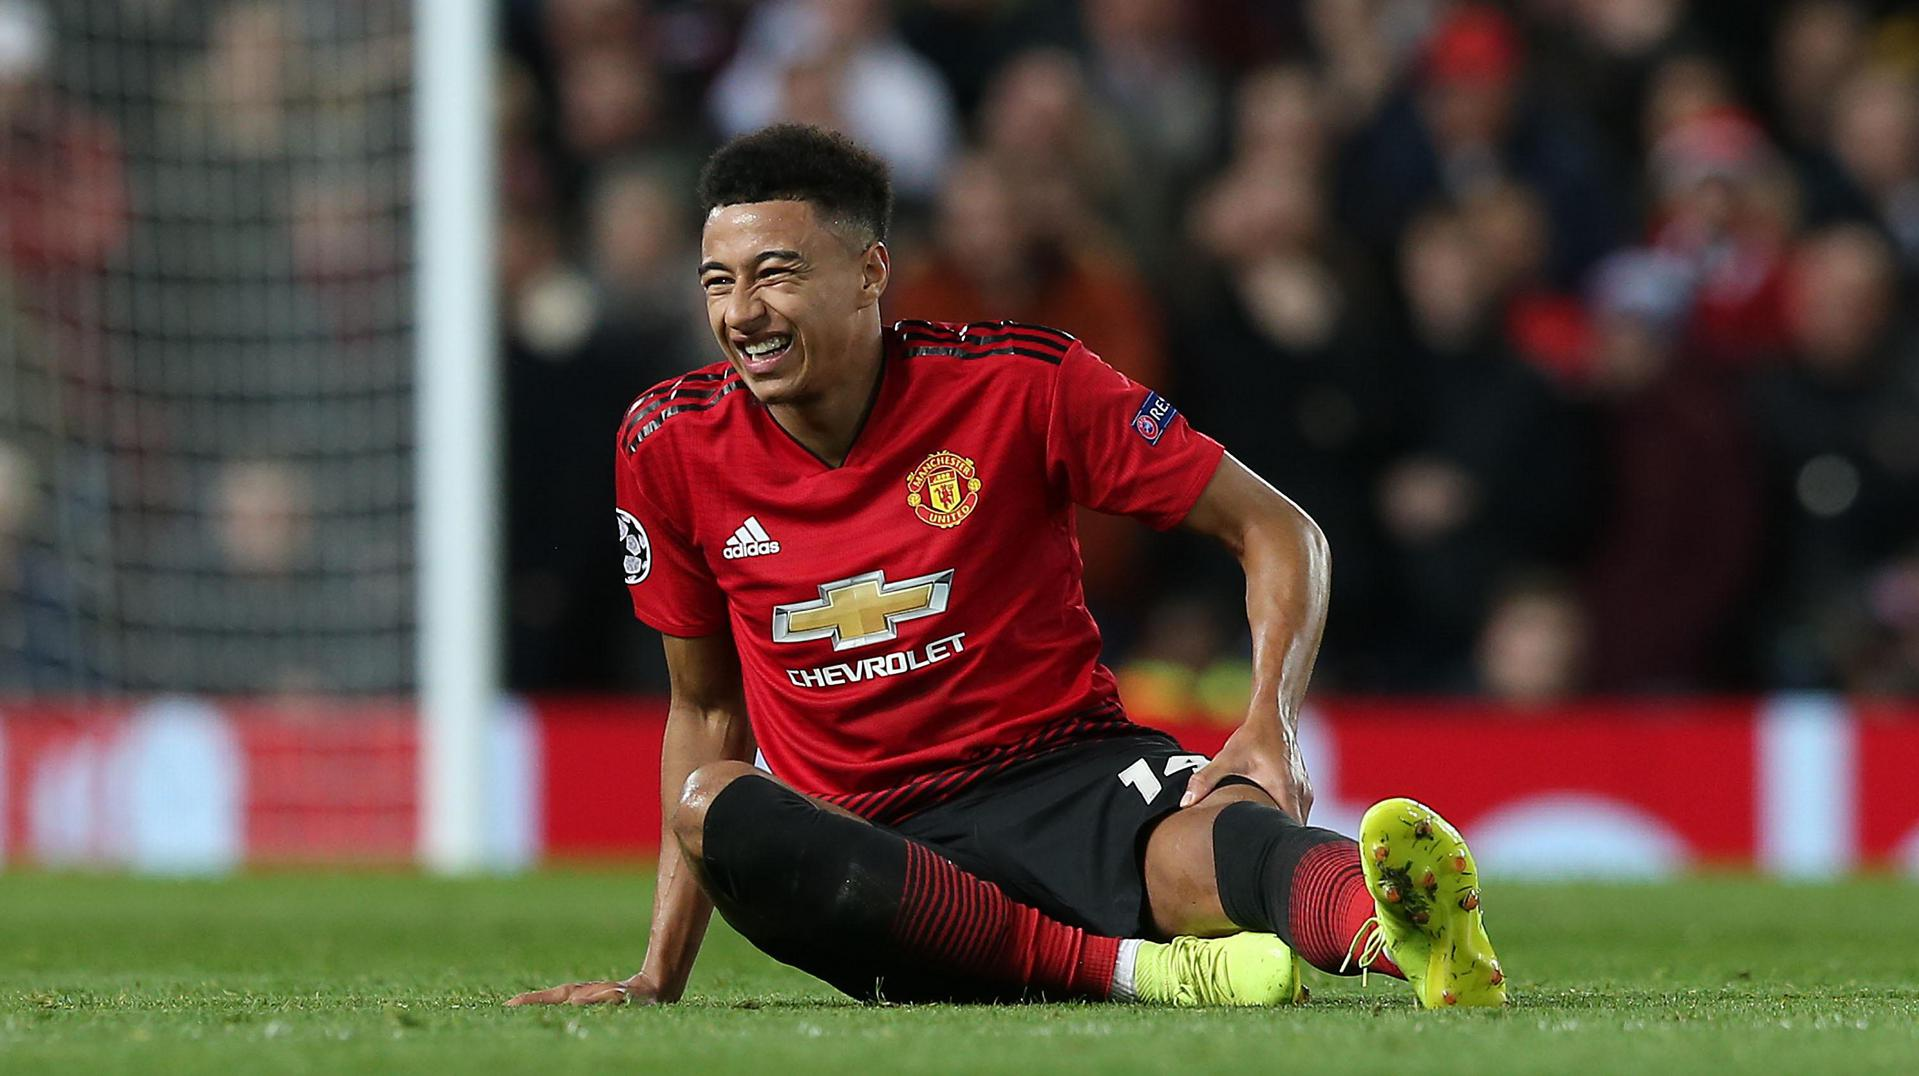 Jesse Lingard sits down in pain as half-time approaches.